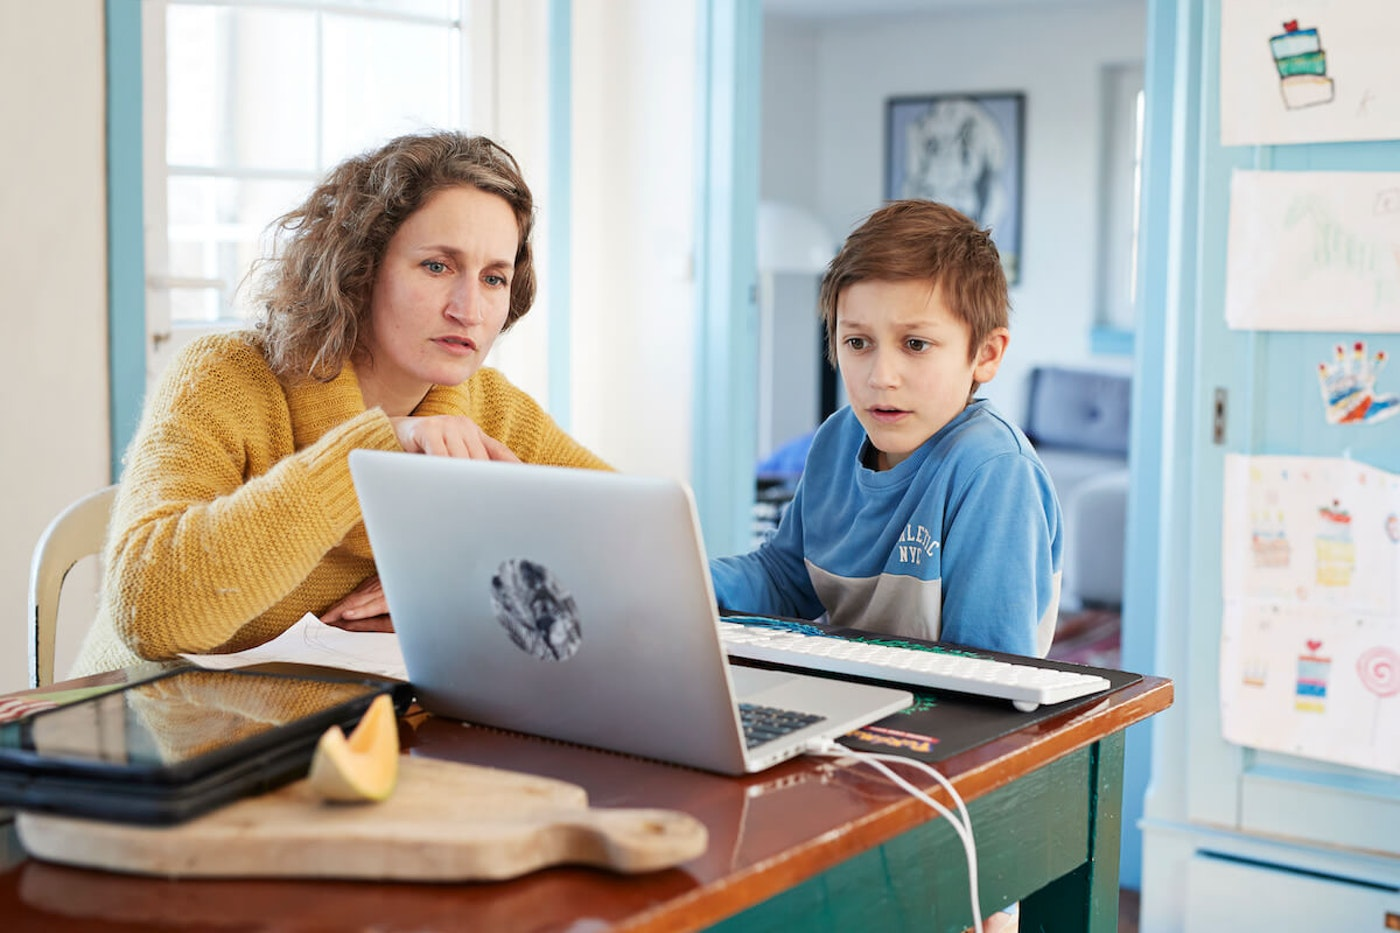 Mother homeschooling son at laptop (Image via Getty Images)